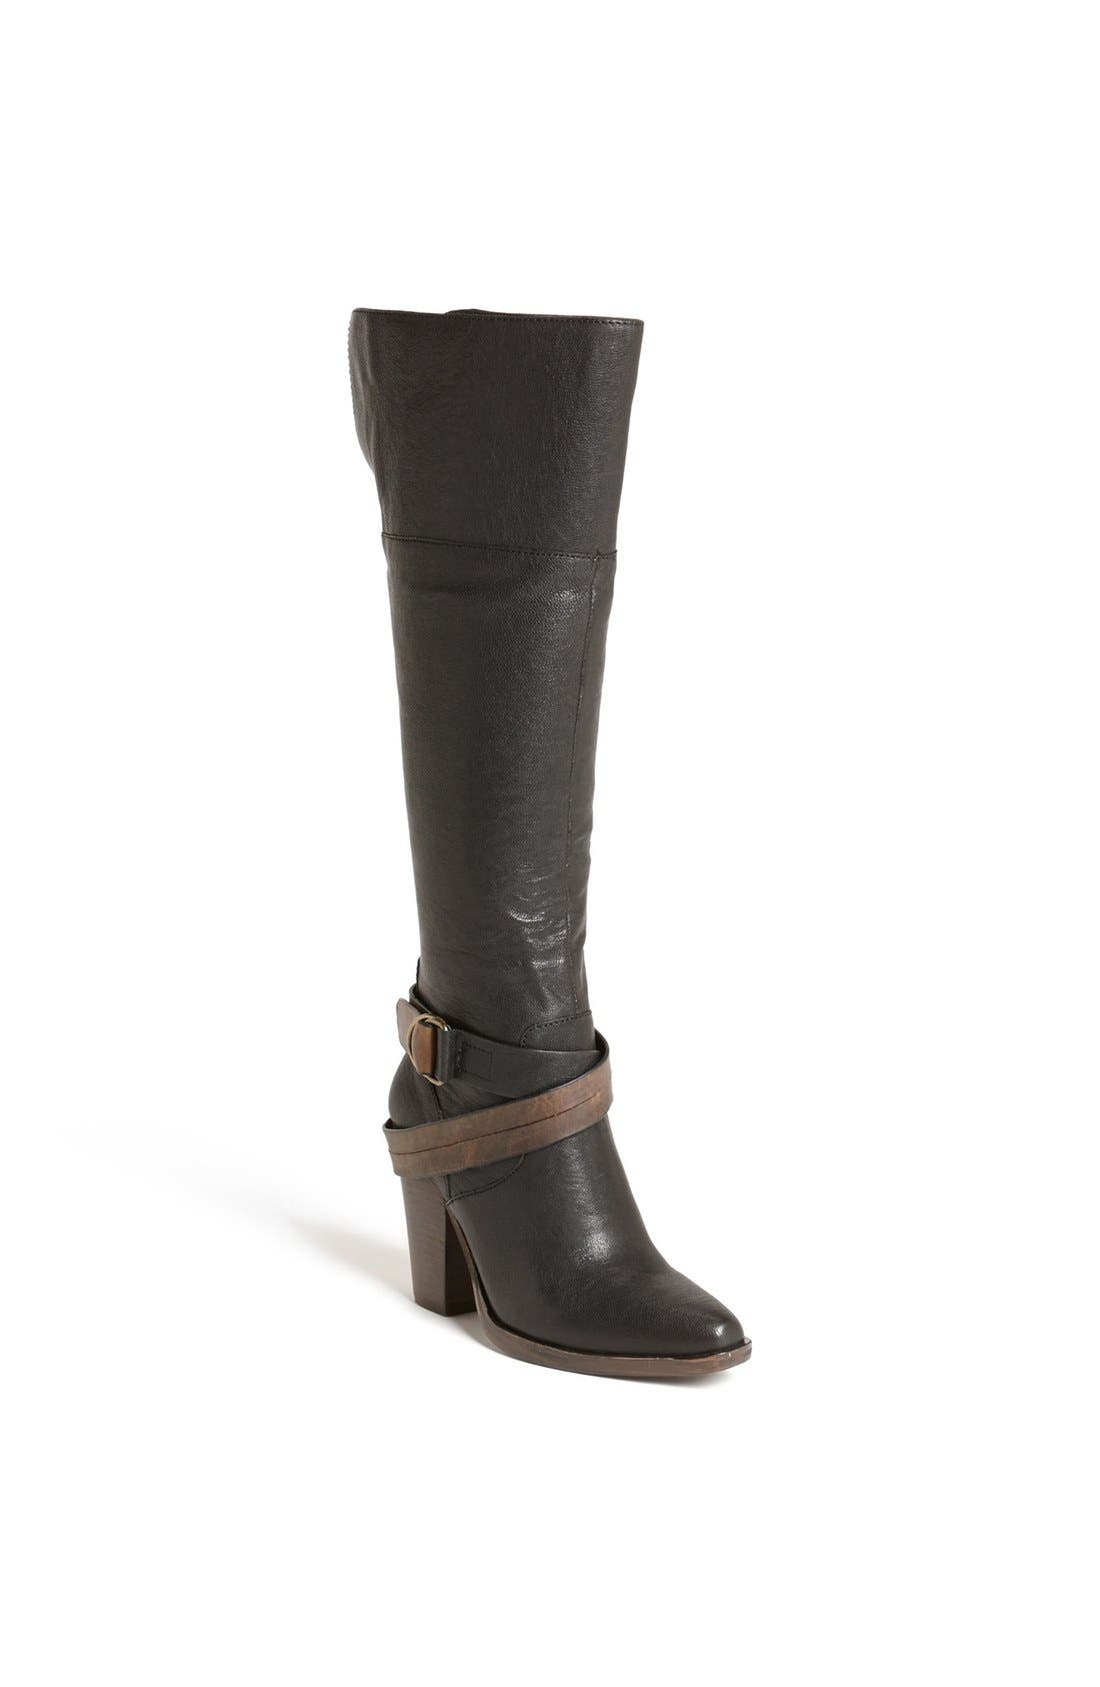 Alternate Image 1 Selected - Steve Madden 'Rockiie' Over the Knee Boot